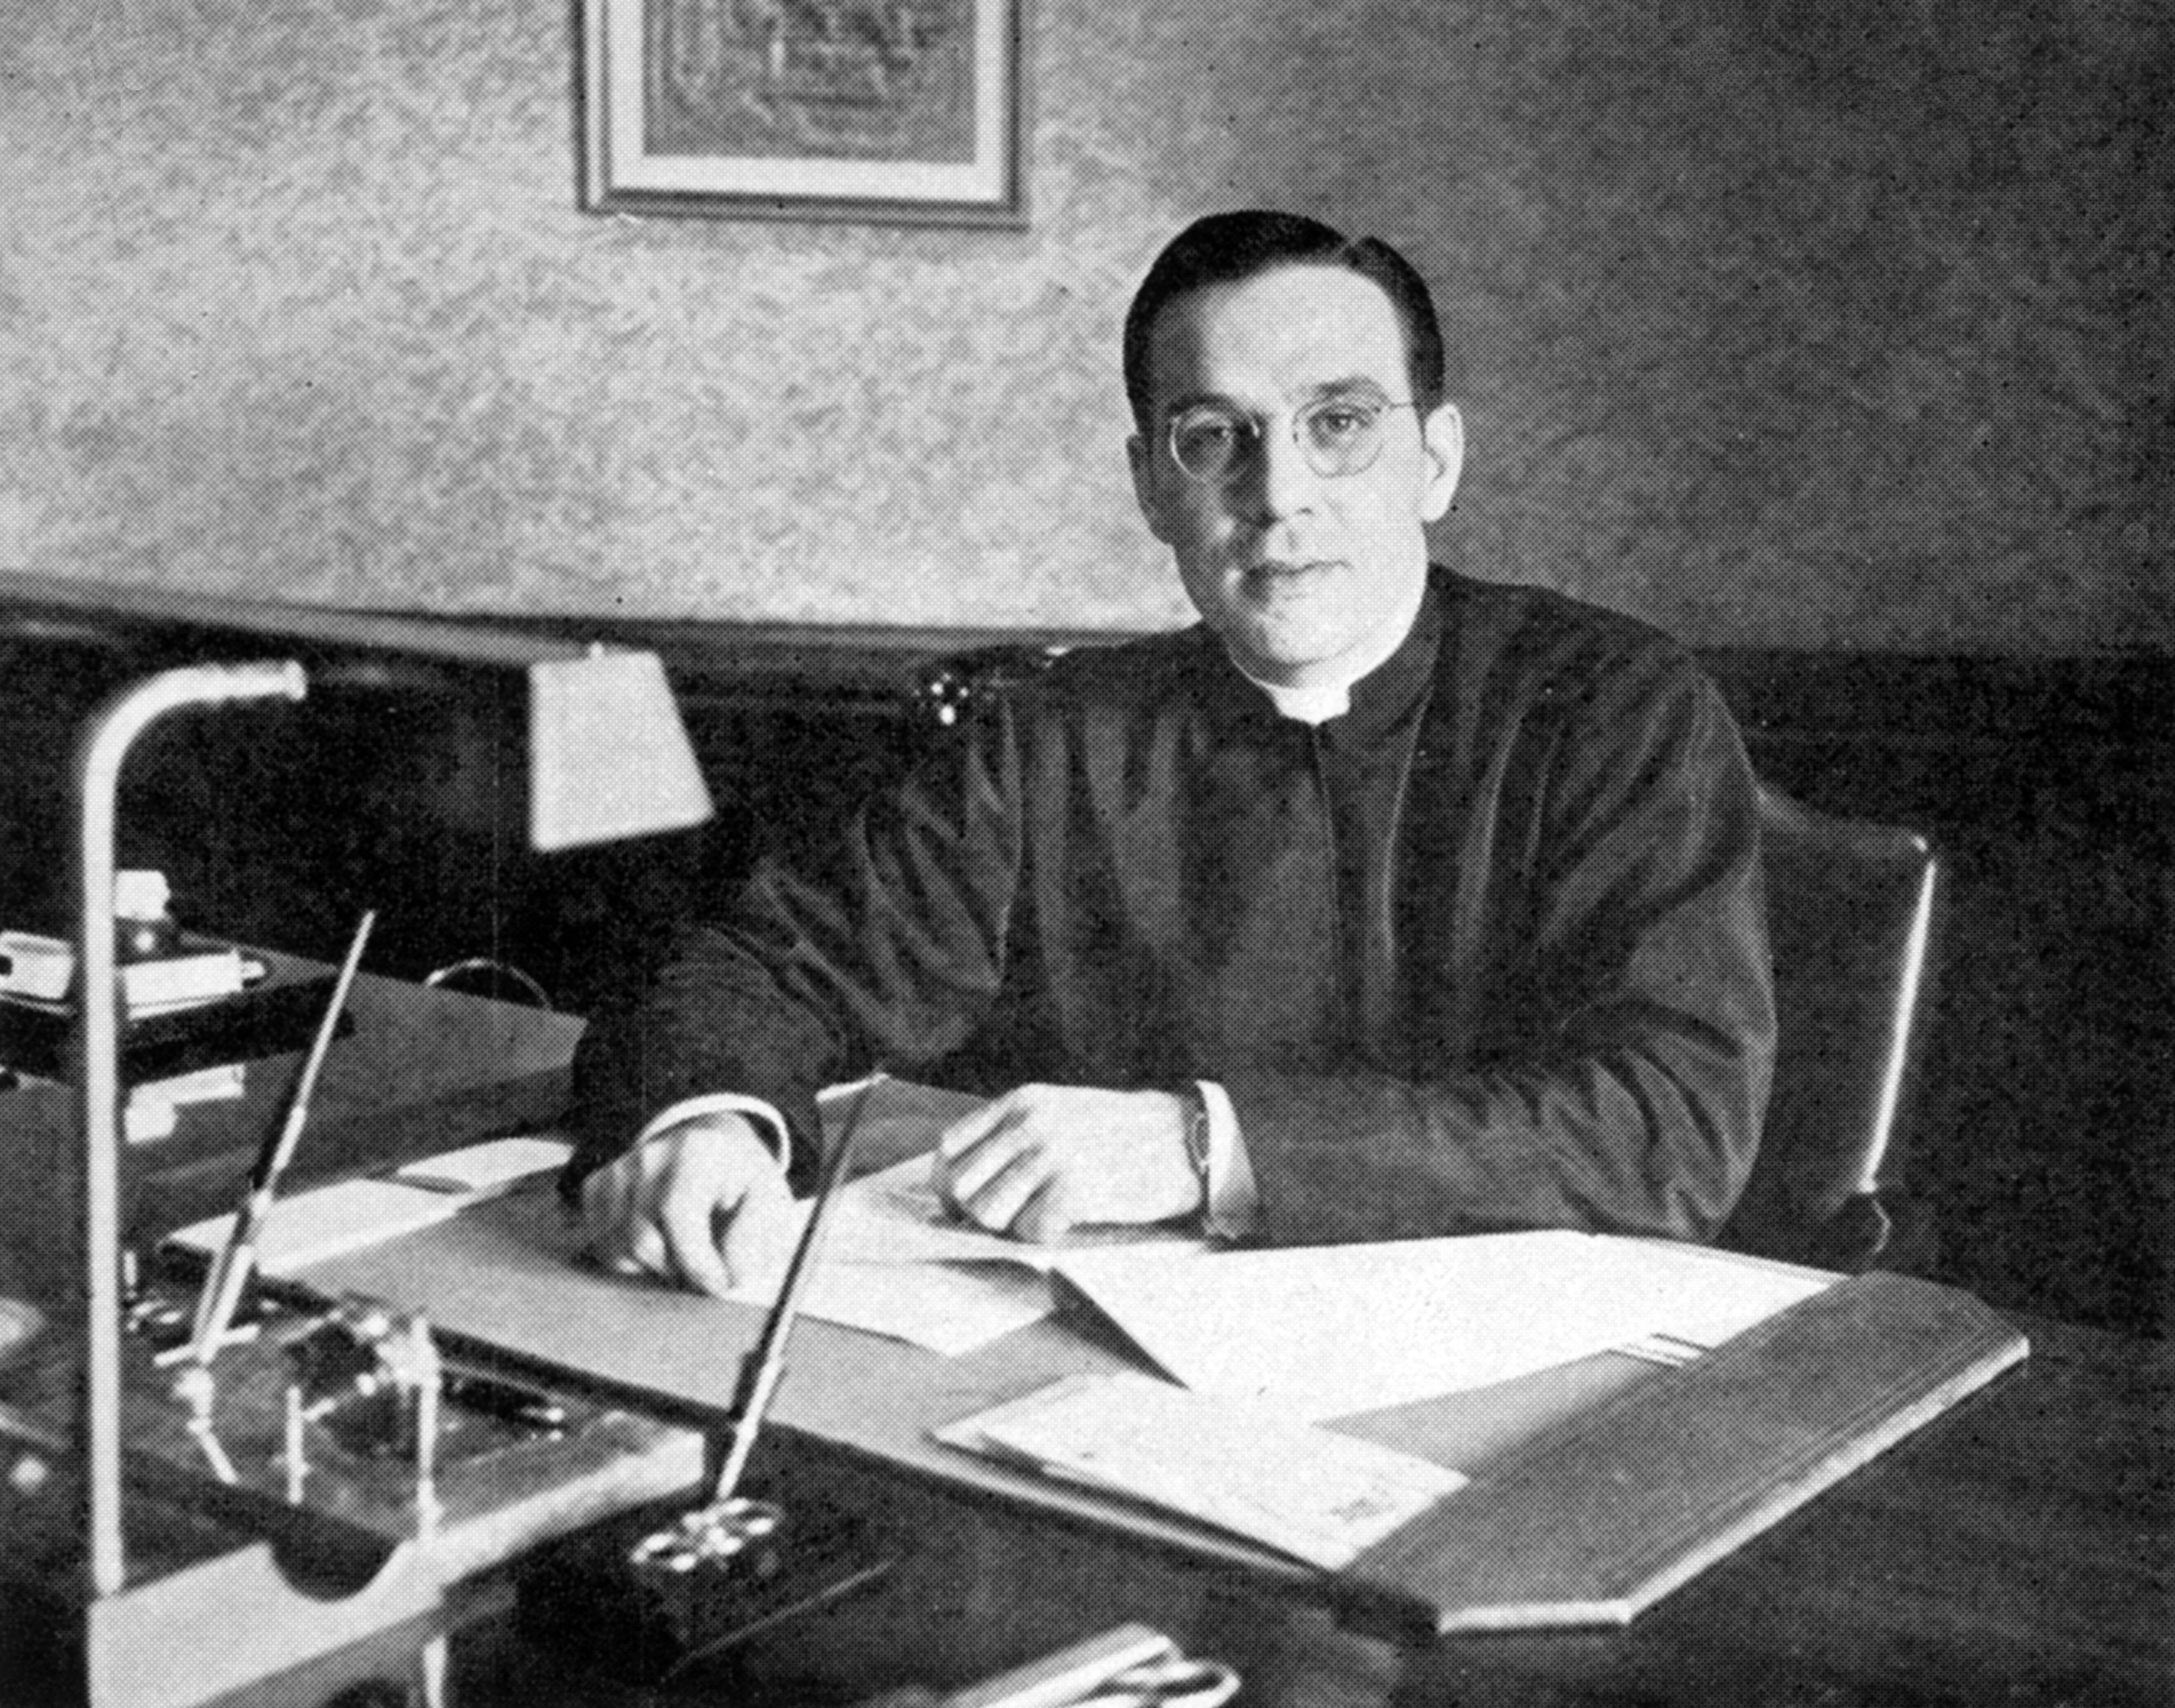 Father Patrick J. Holloran, SJ, president of Saint Louis University, 1943-1949. (SLU Photo Collection - Archives. Saint Louis University Libraries.)